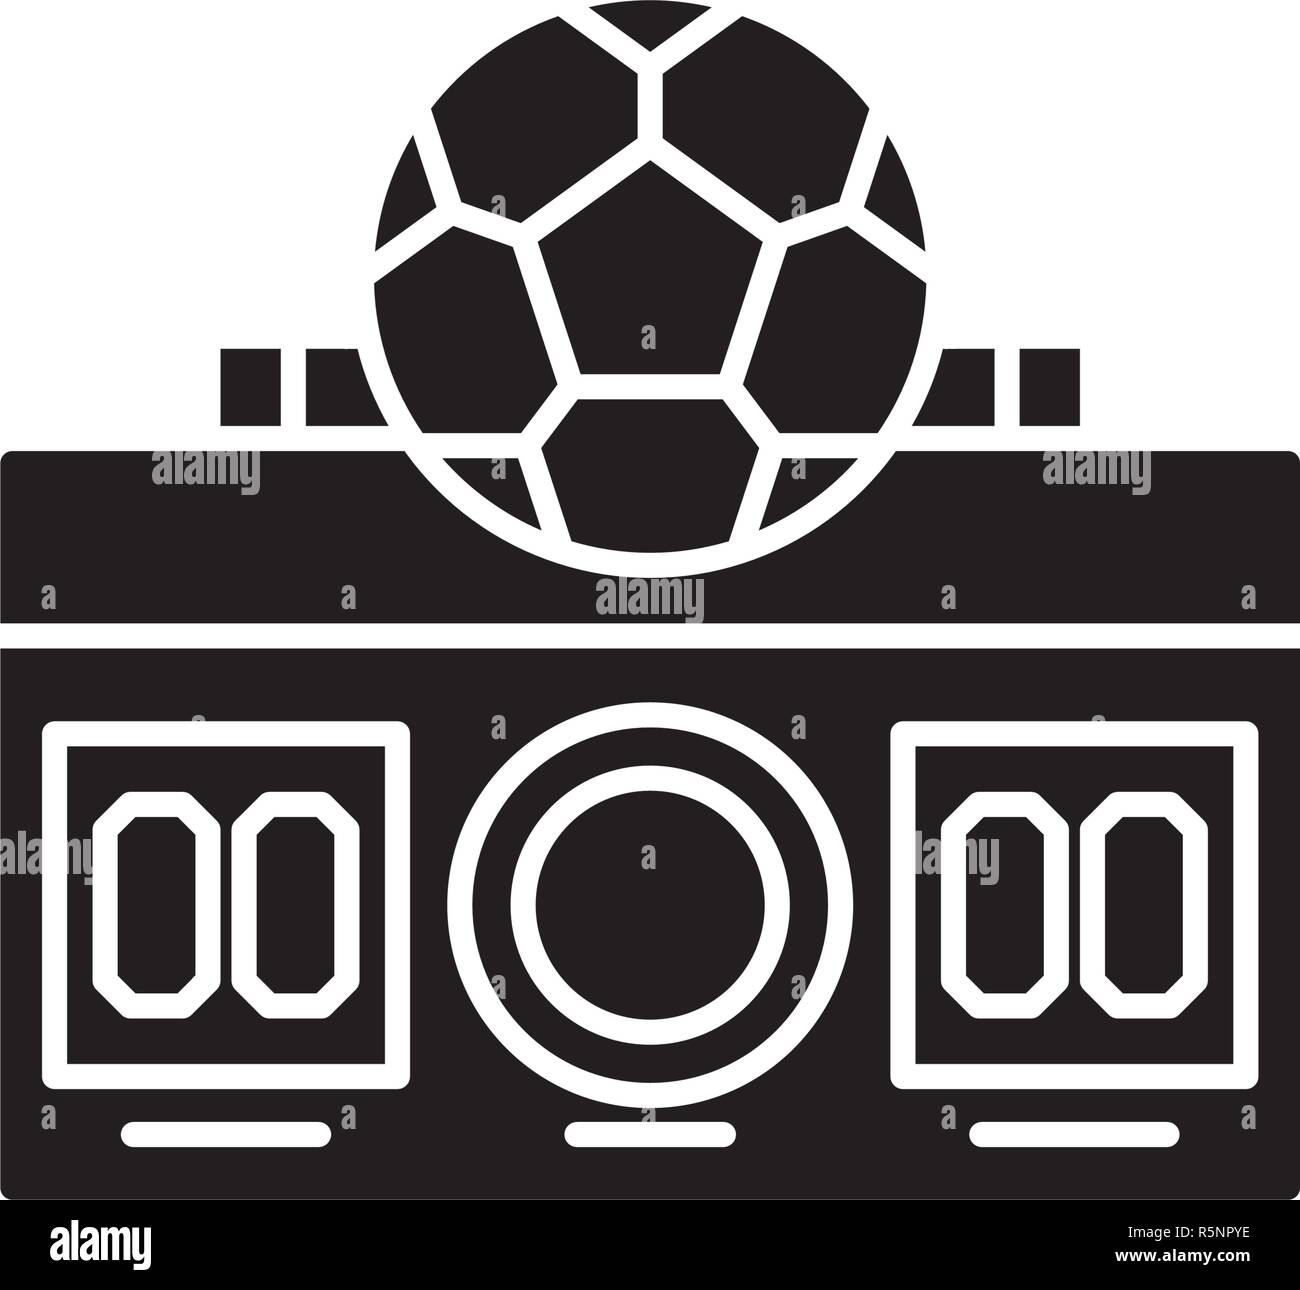 Football score black icon, vector sign on isolated background. Football score concept symbol, illustration  - Stock Vector